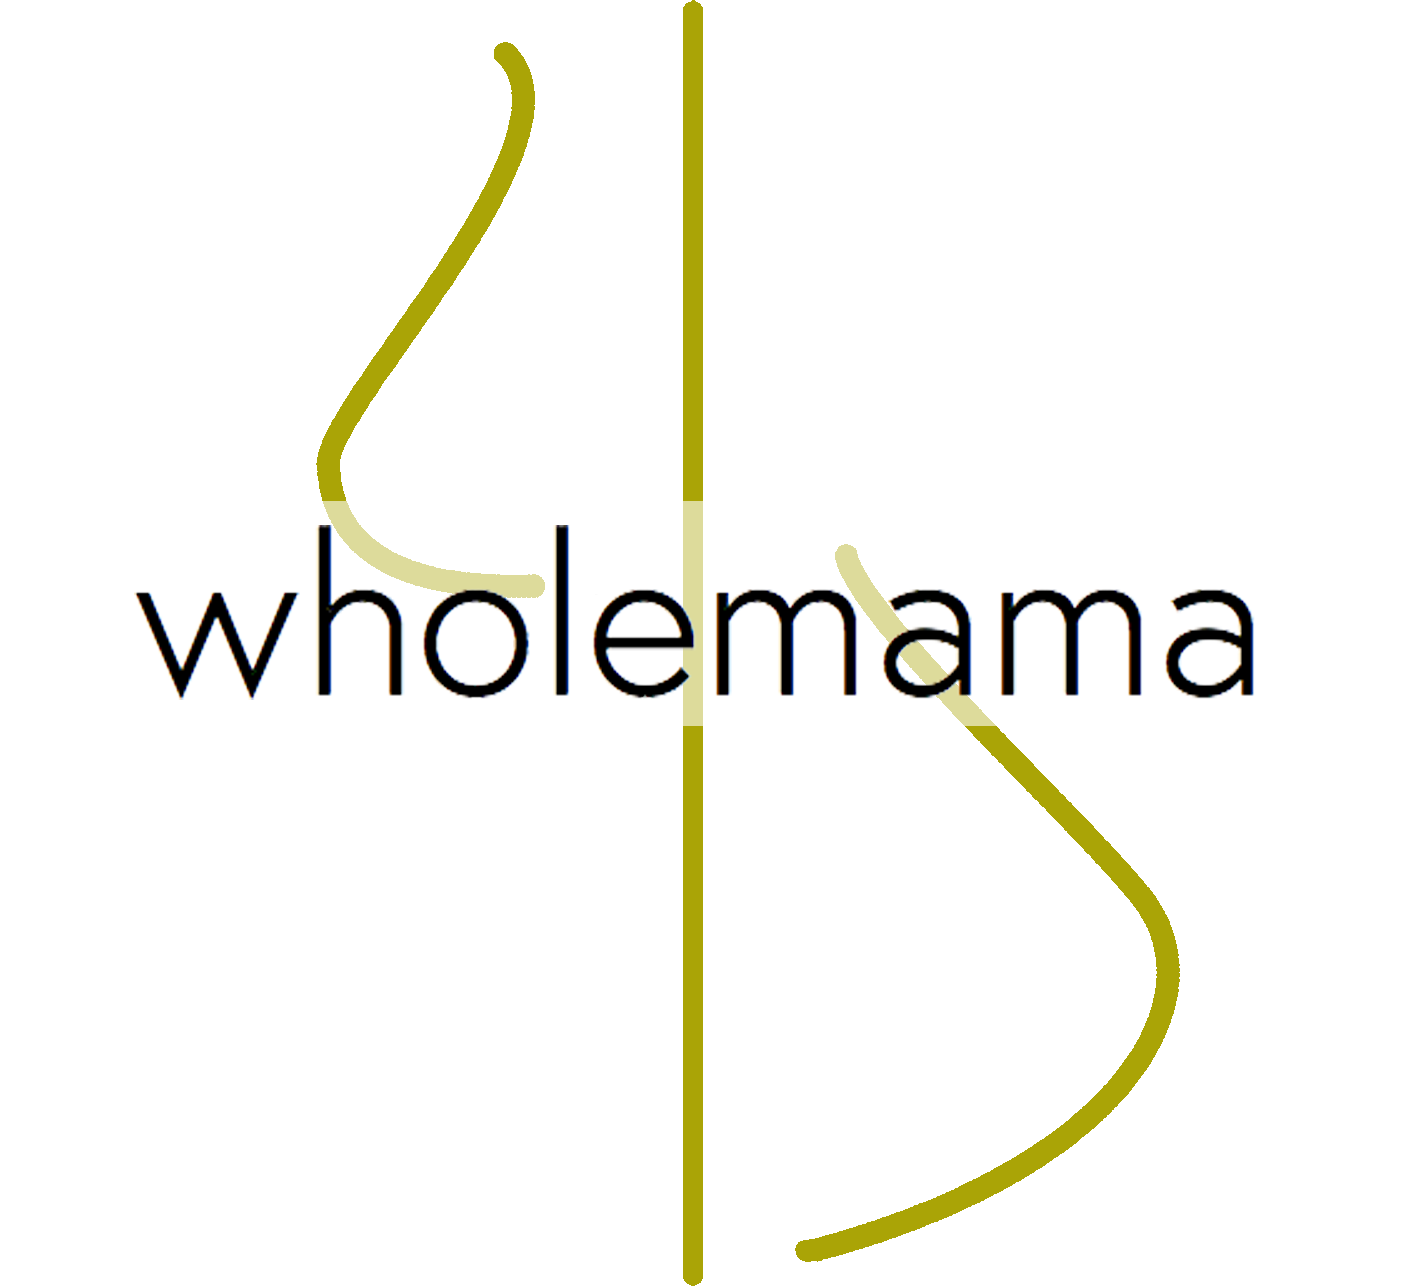 wholemama - Toronto Doula Services, HypnoBirthingⓇ Classes, and Placenta Encapsulation